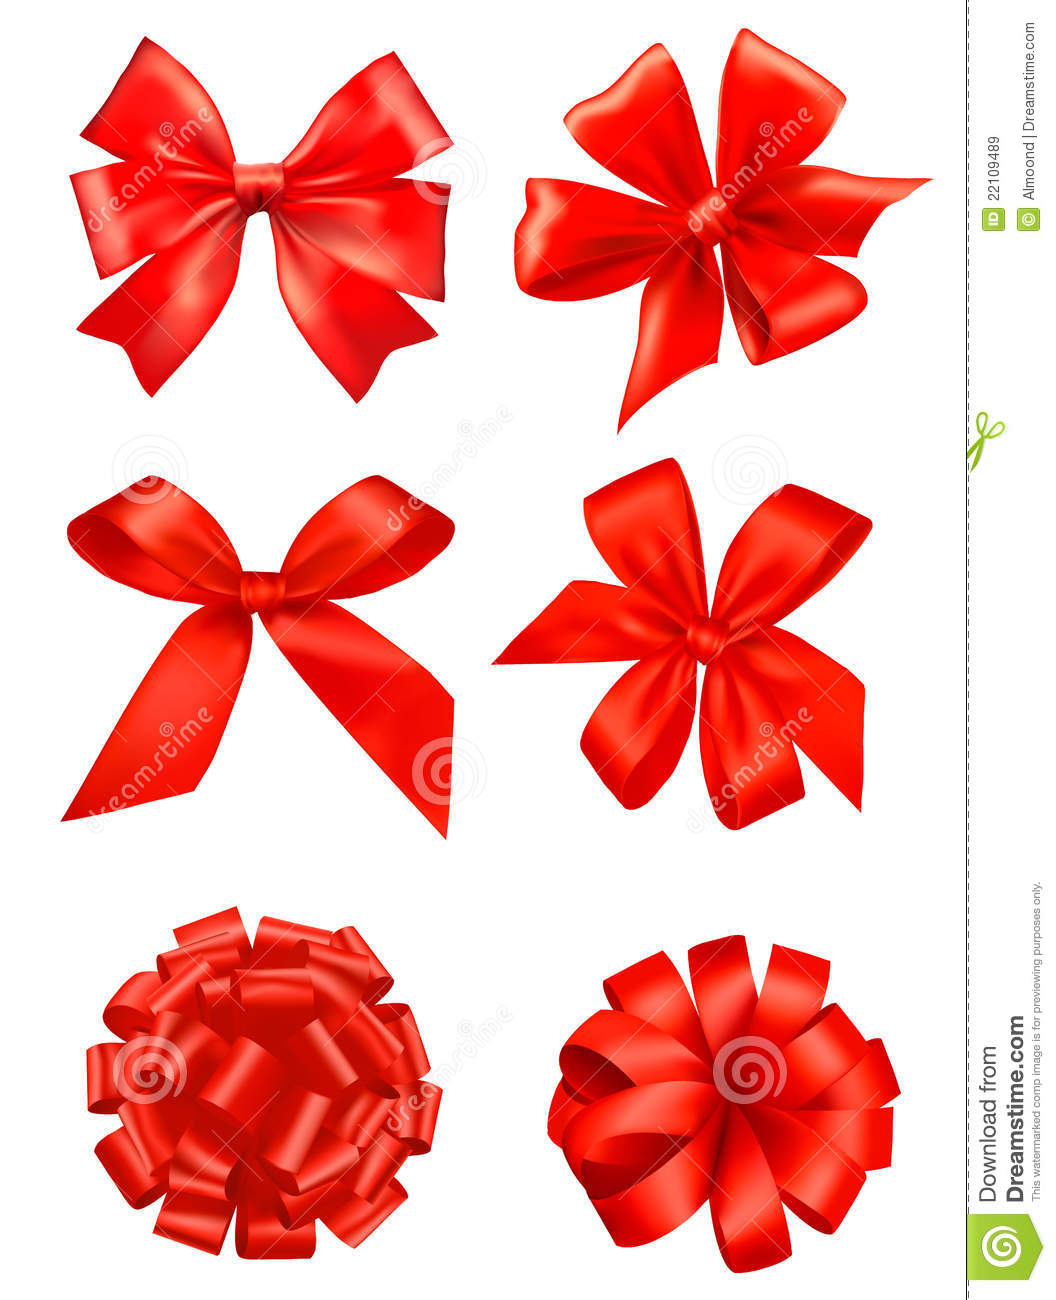 red states map with Royalty Free Stock Images Big Set Red Gift Bows Ribbons Vector Image22109489 on Kaart1543 further Bidderford likewise Ona in addition Stock Image German Bratwurst Image19603881 also 7Seas Estates.